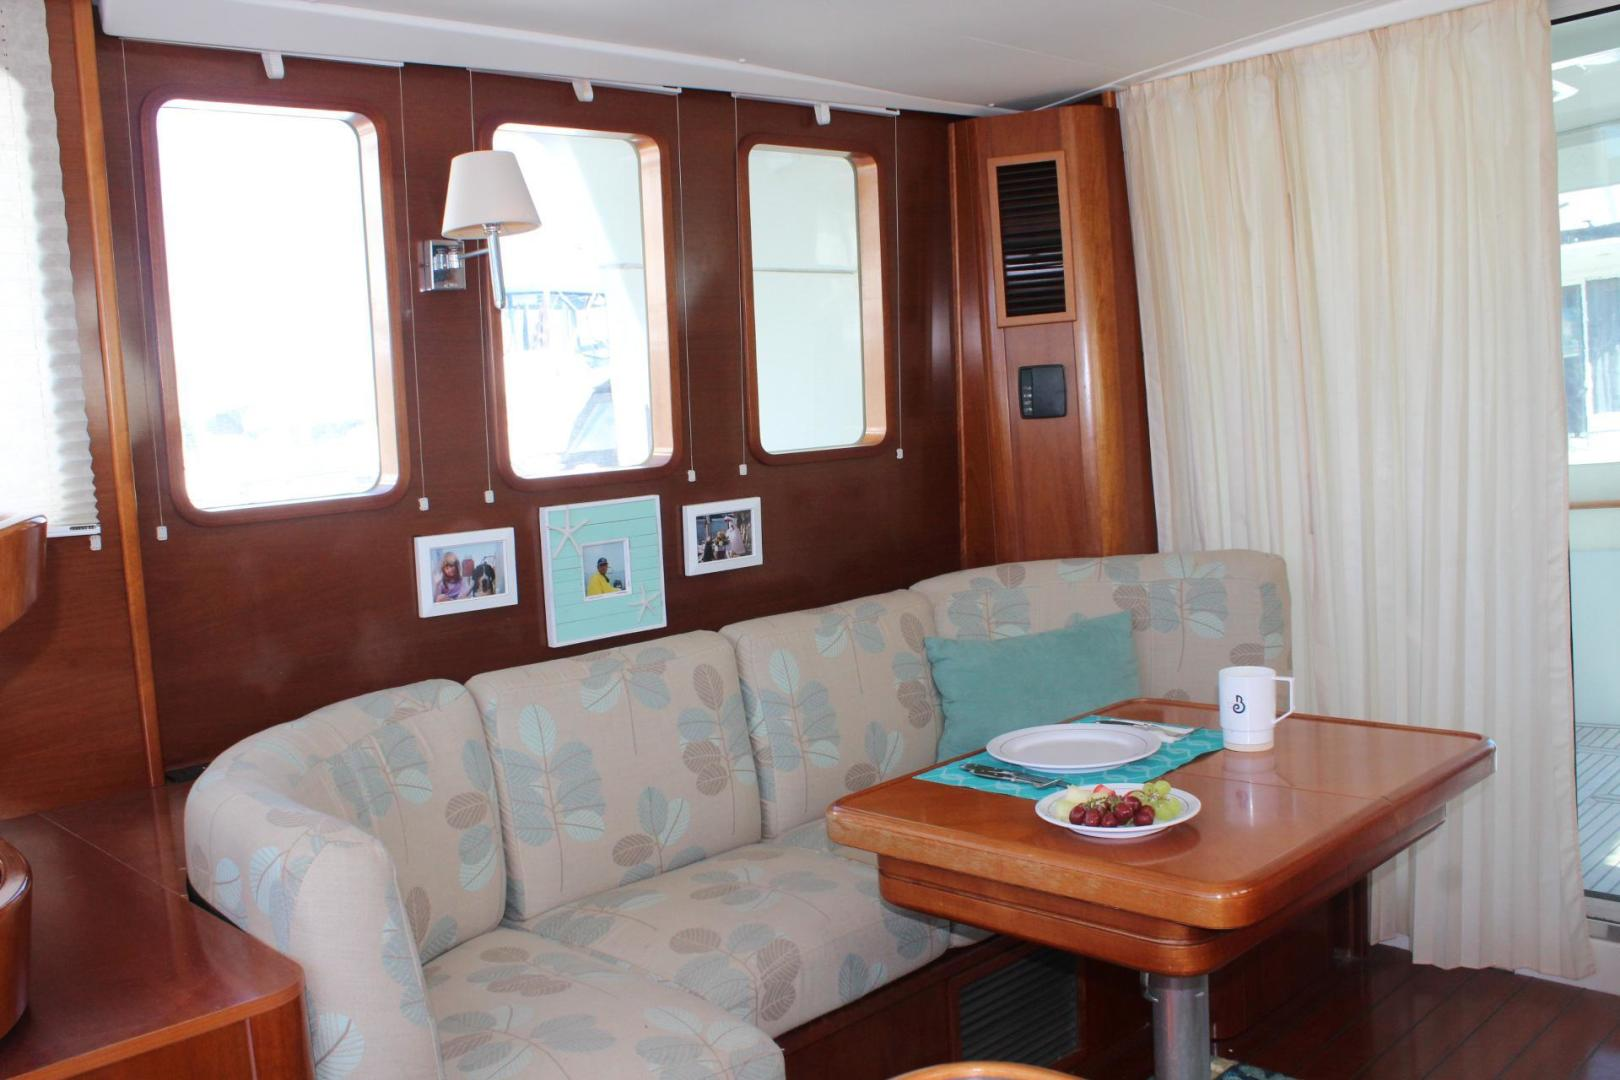 Beneteau-Swift Trawler 42 2006 -Essex-Connecticut-United States-1547744 | Thumbnail